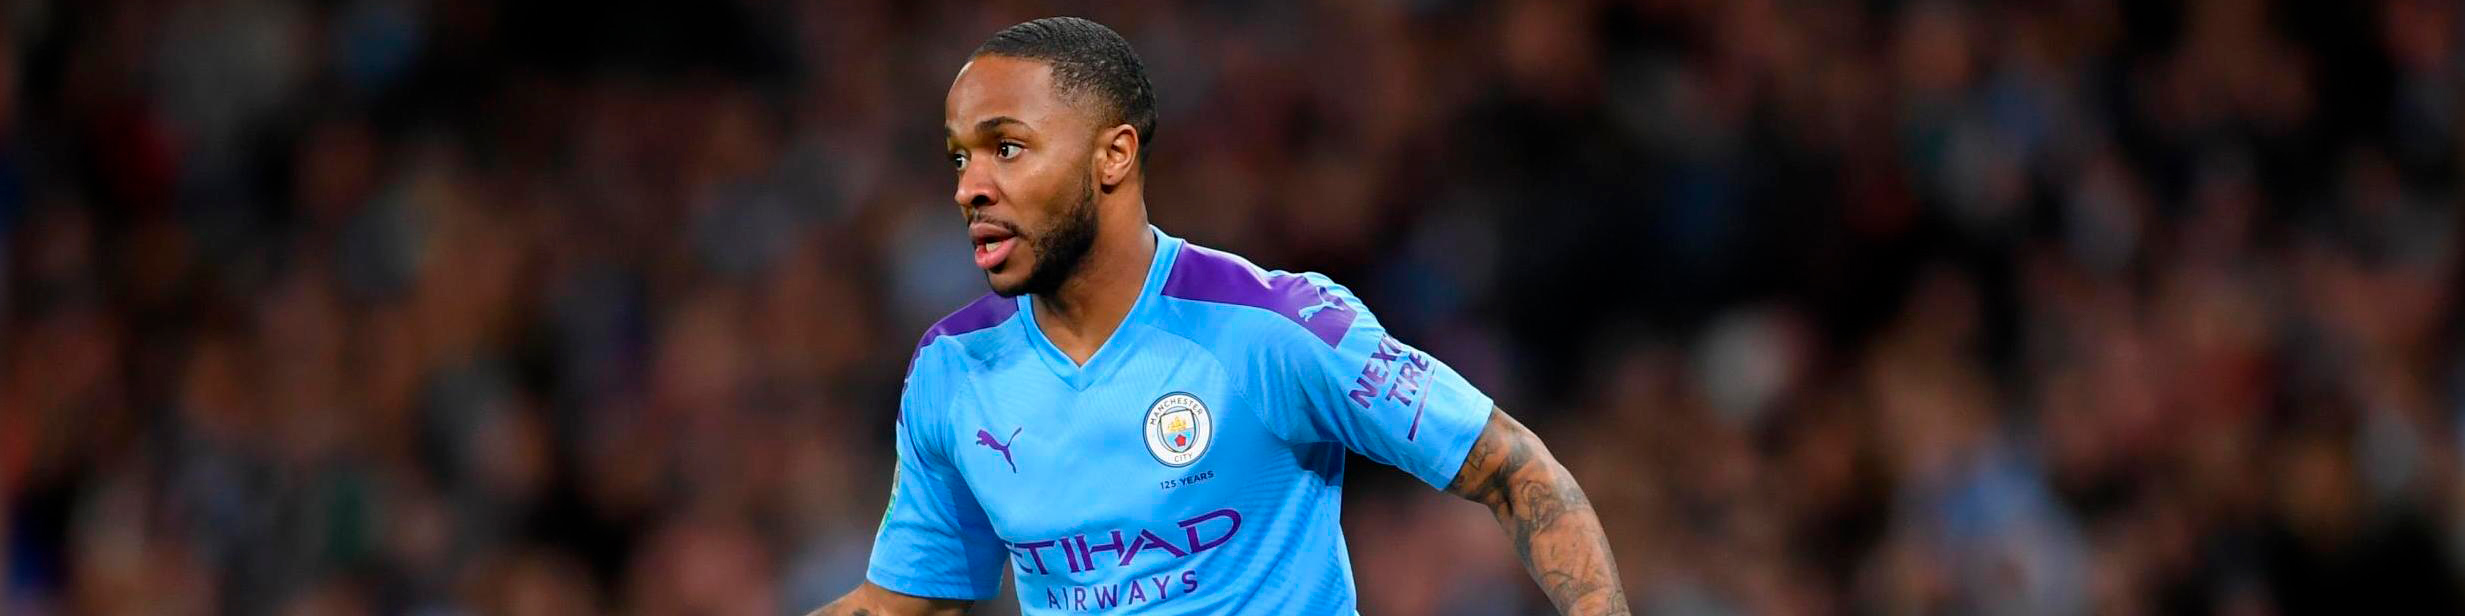 Raheem Sterling: Help end Israeli apartheid—don't sign with Puma!